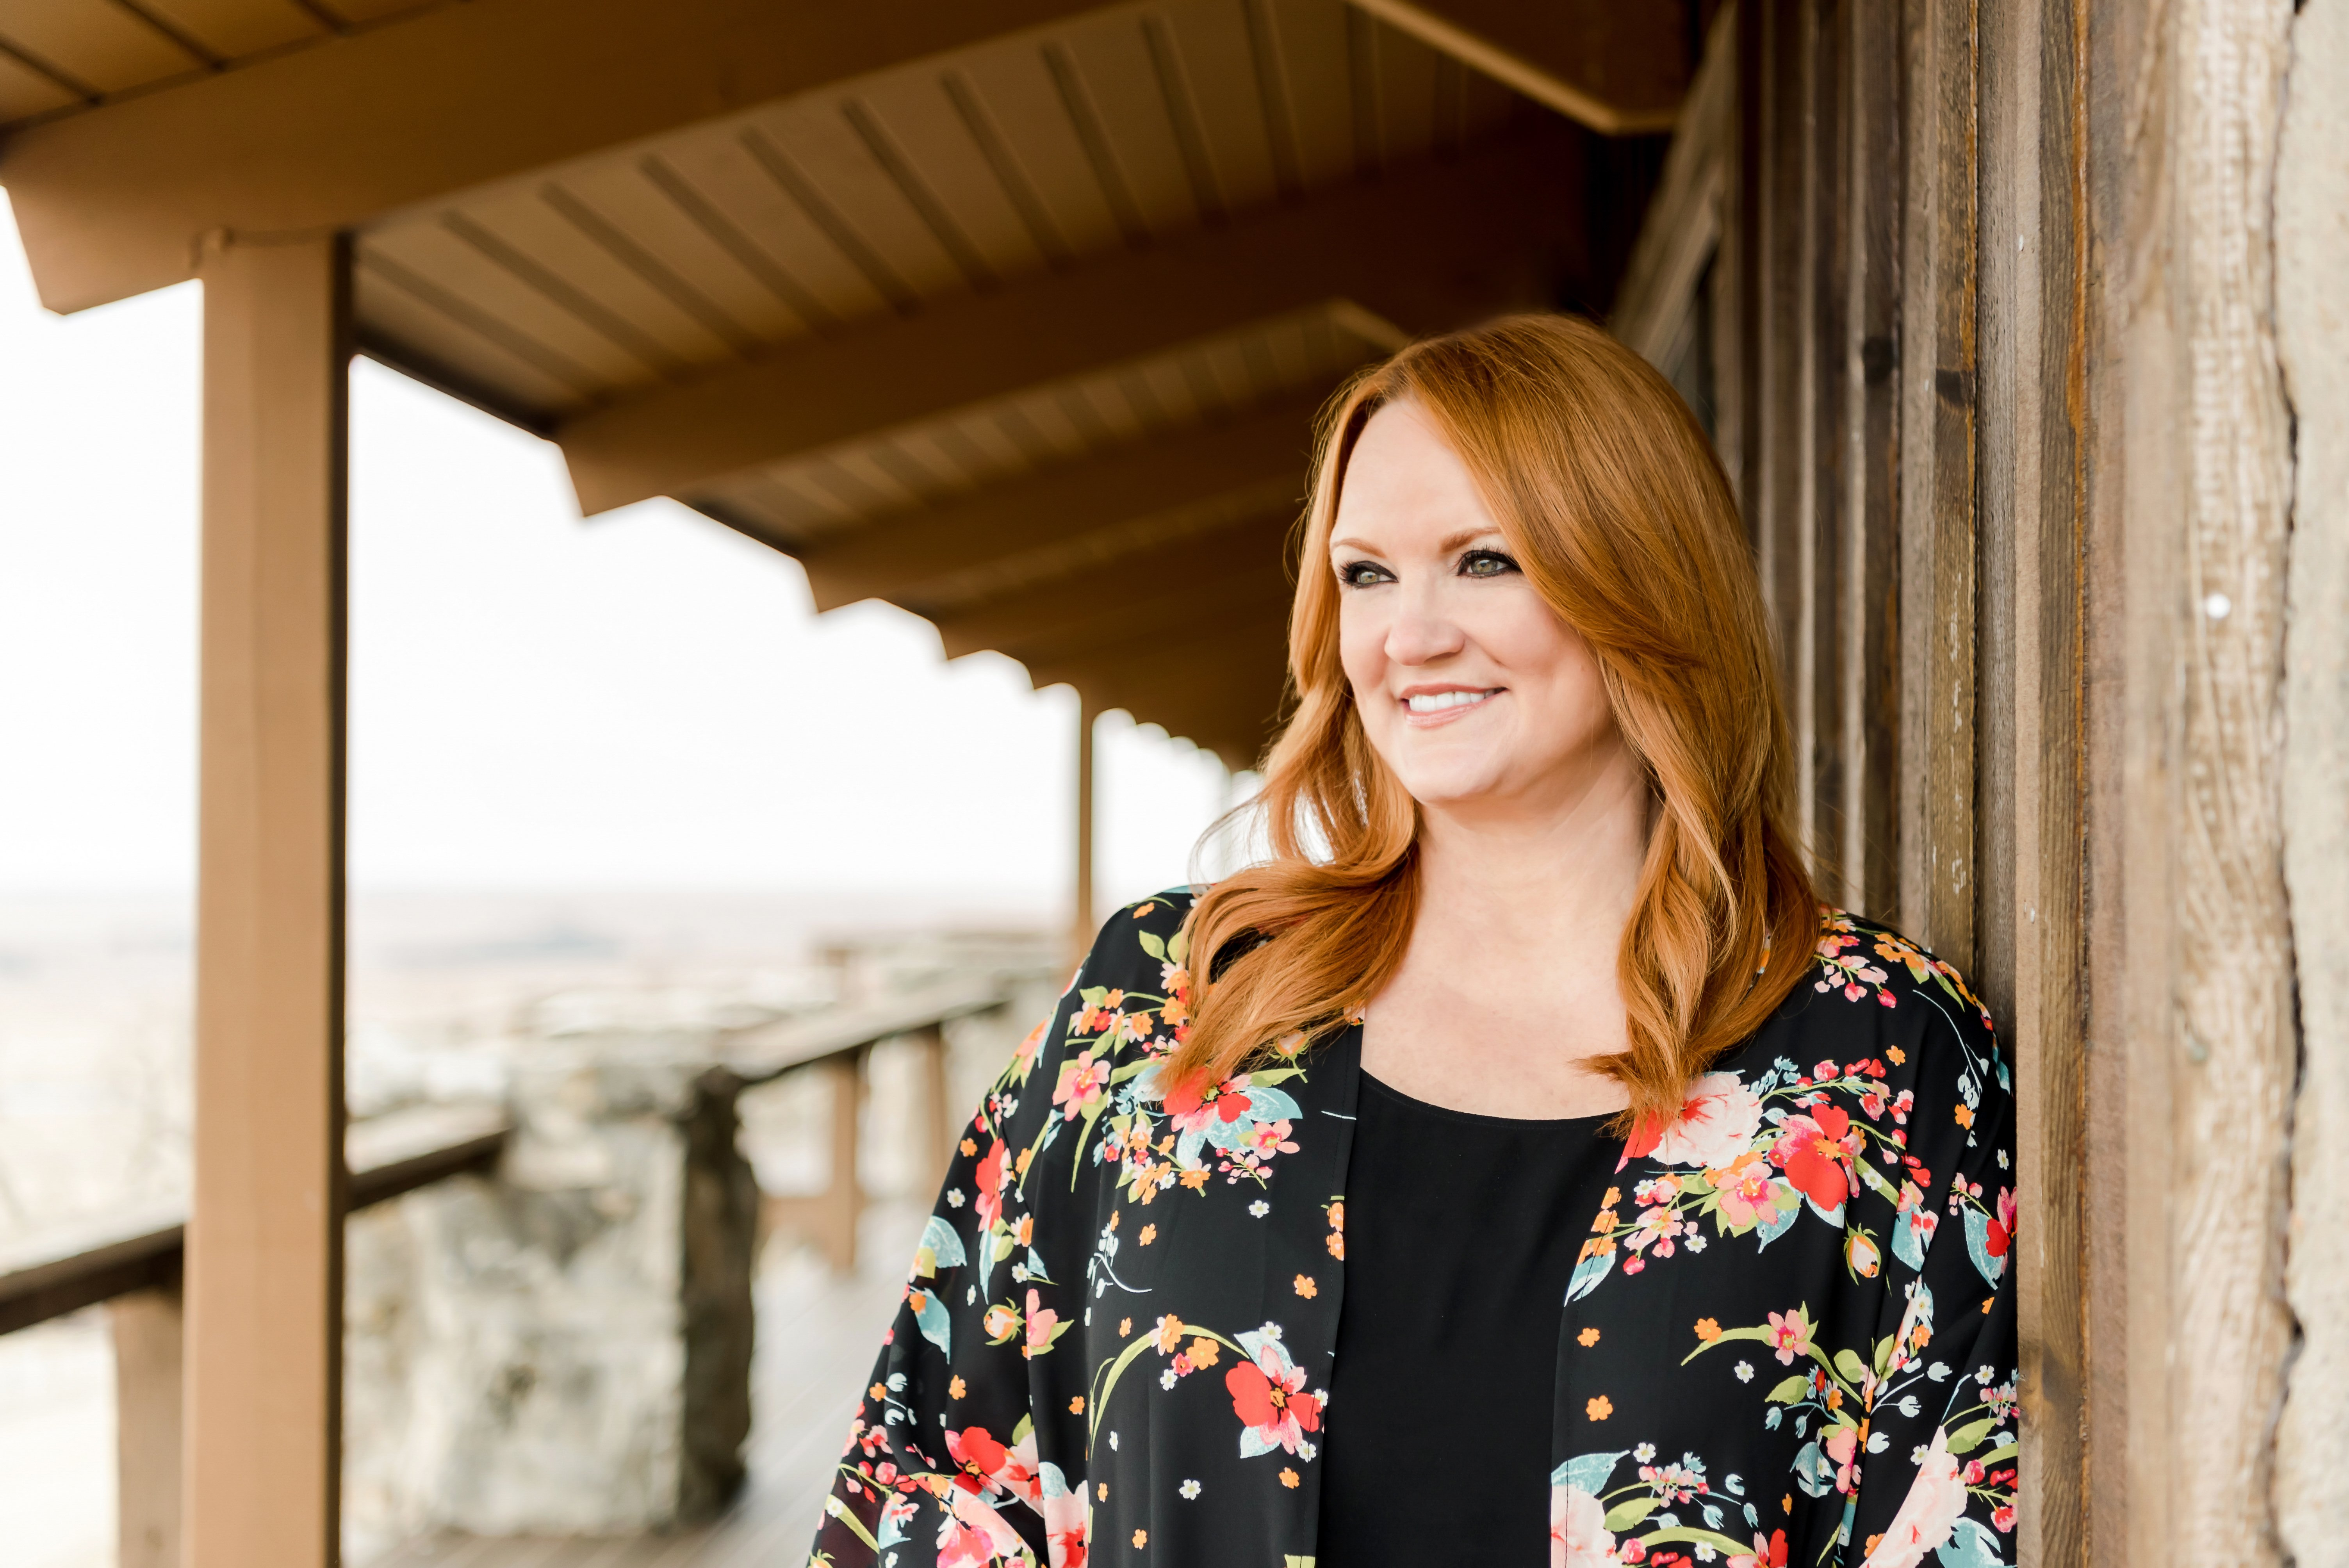 Ree Drummond looking engaging in floral. | Source: The Pioneer Woman/Ree Drummond